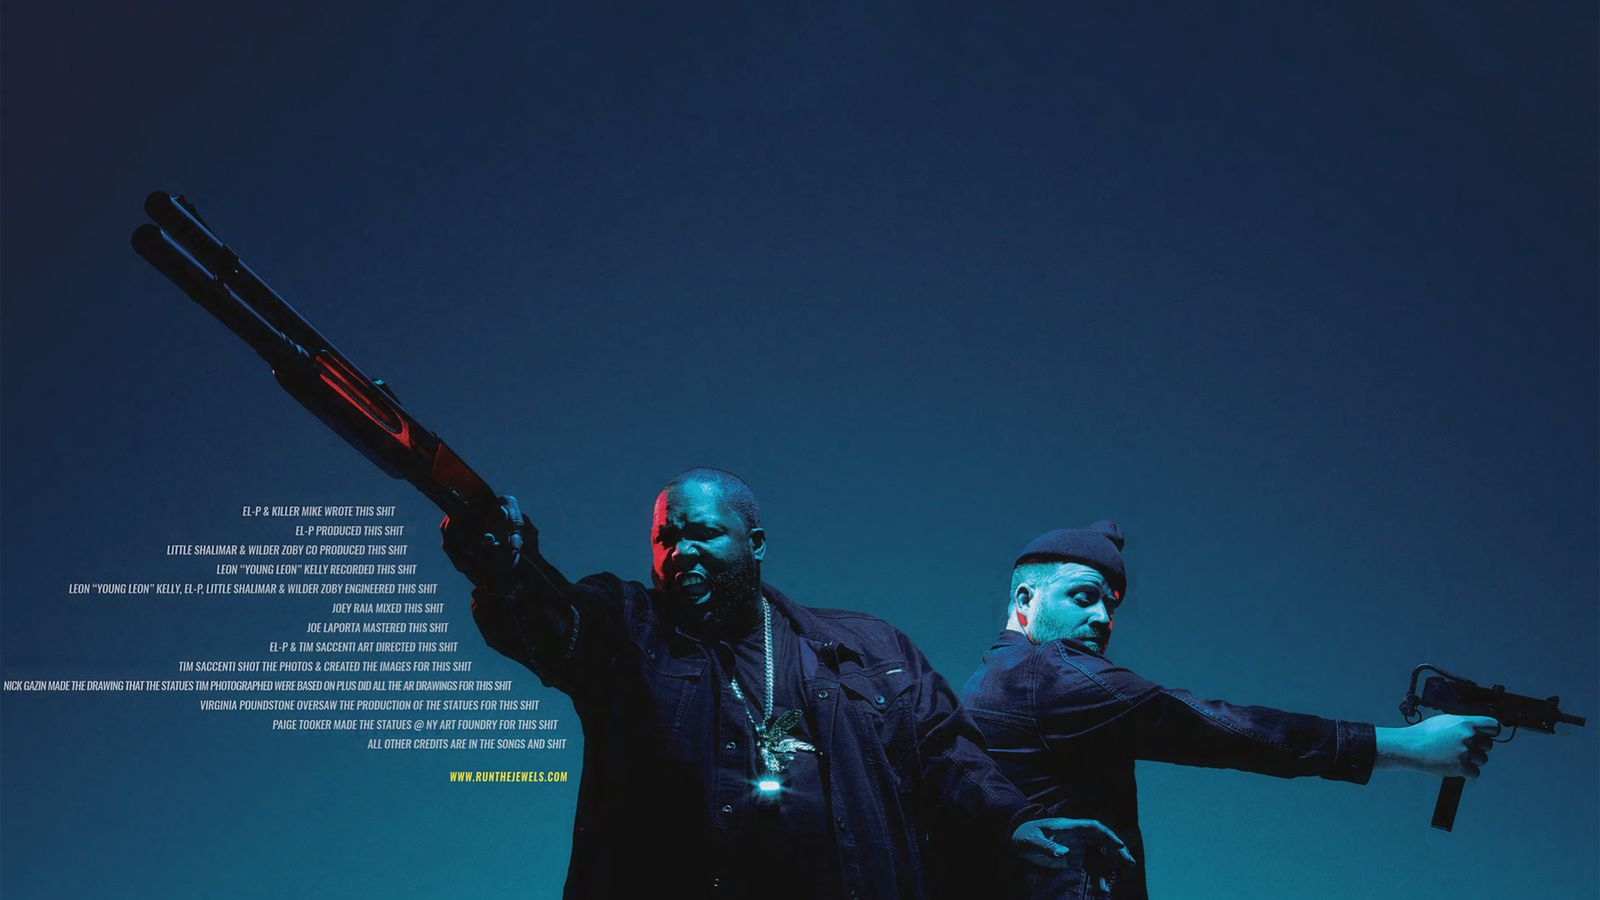 Run The Jewels 3 Is Available For Free Download The Verge